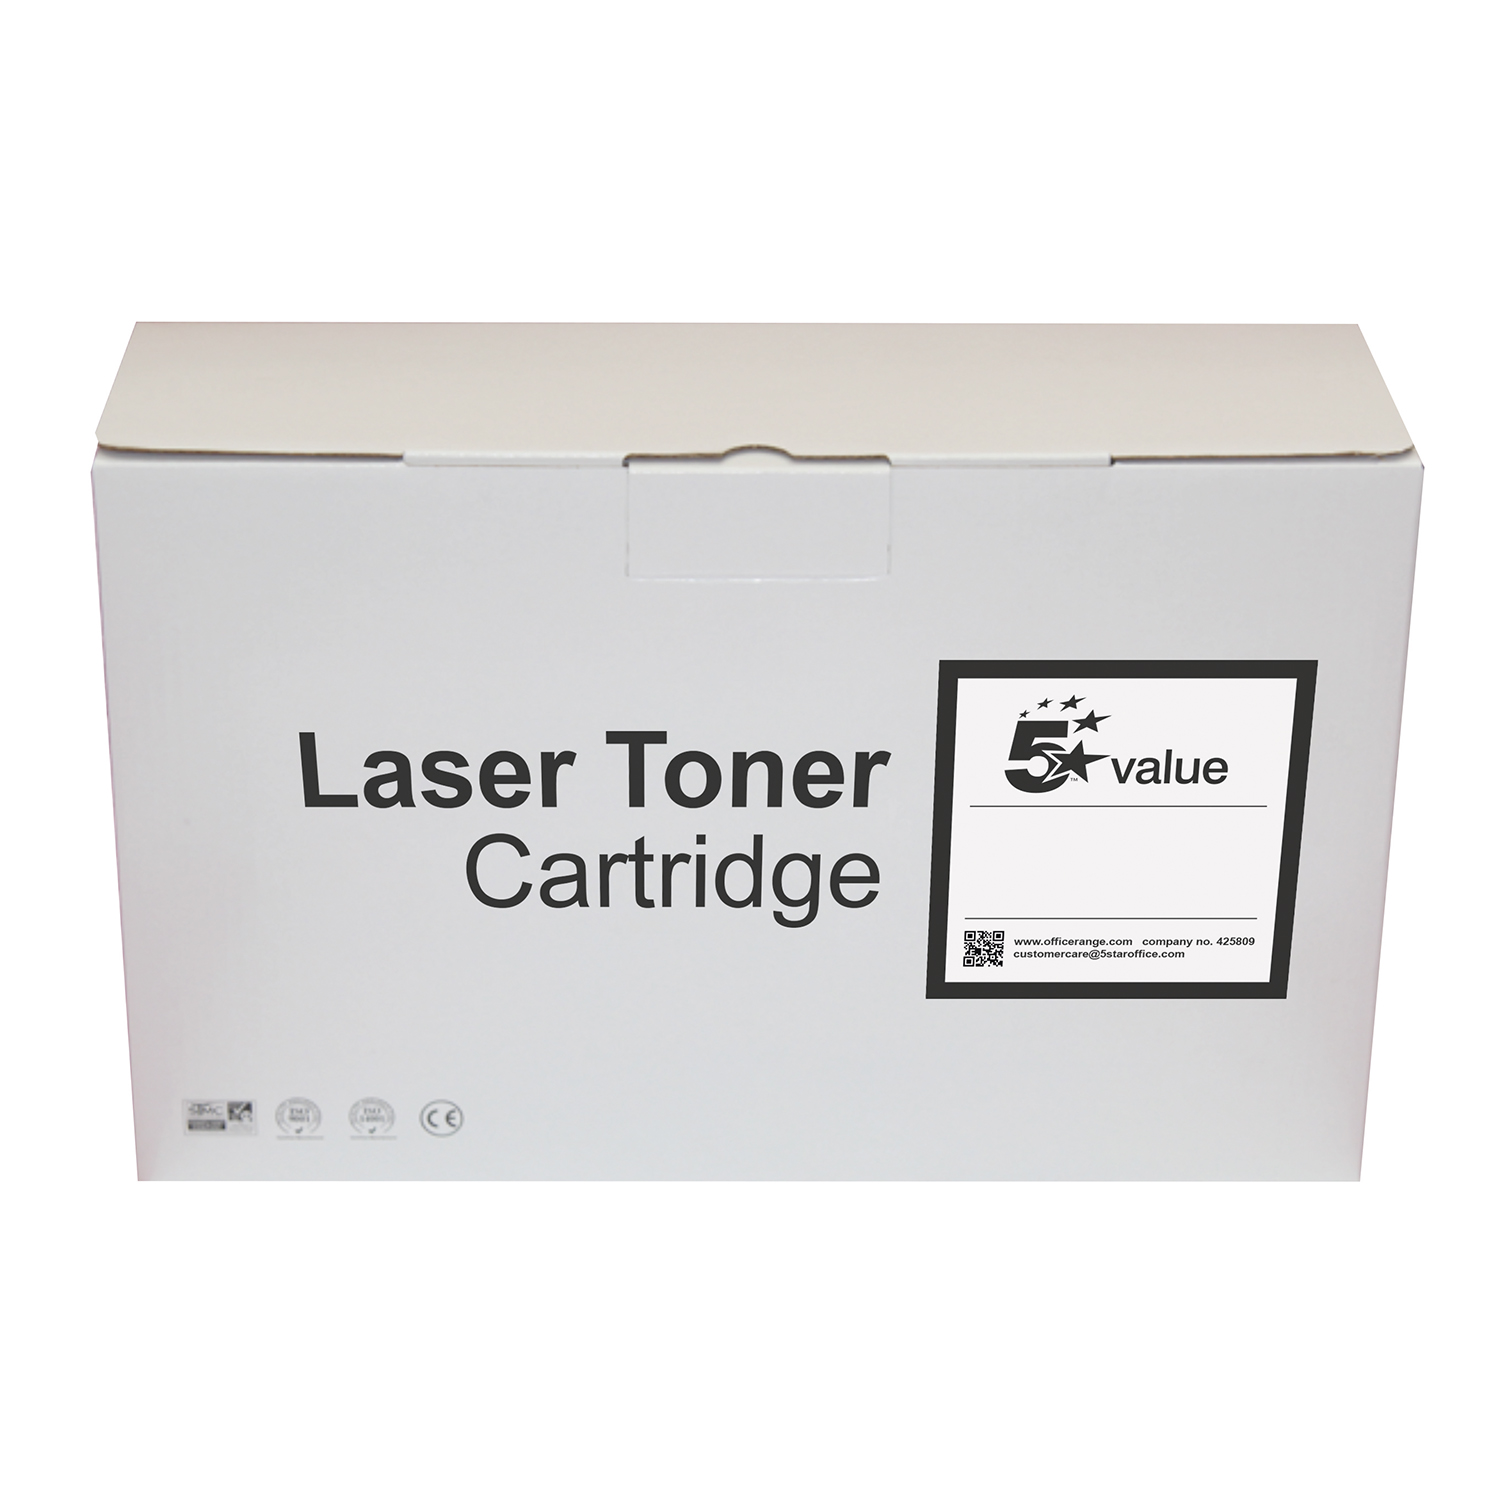 Laser Toner Cartridges 5 Star Value HP 312X HY Toner Cartridge Black CF380X